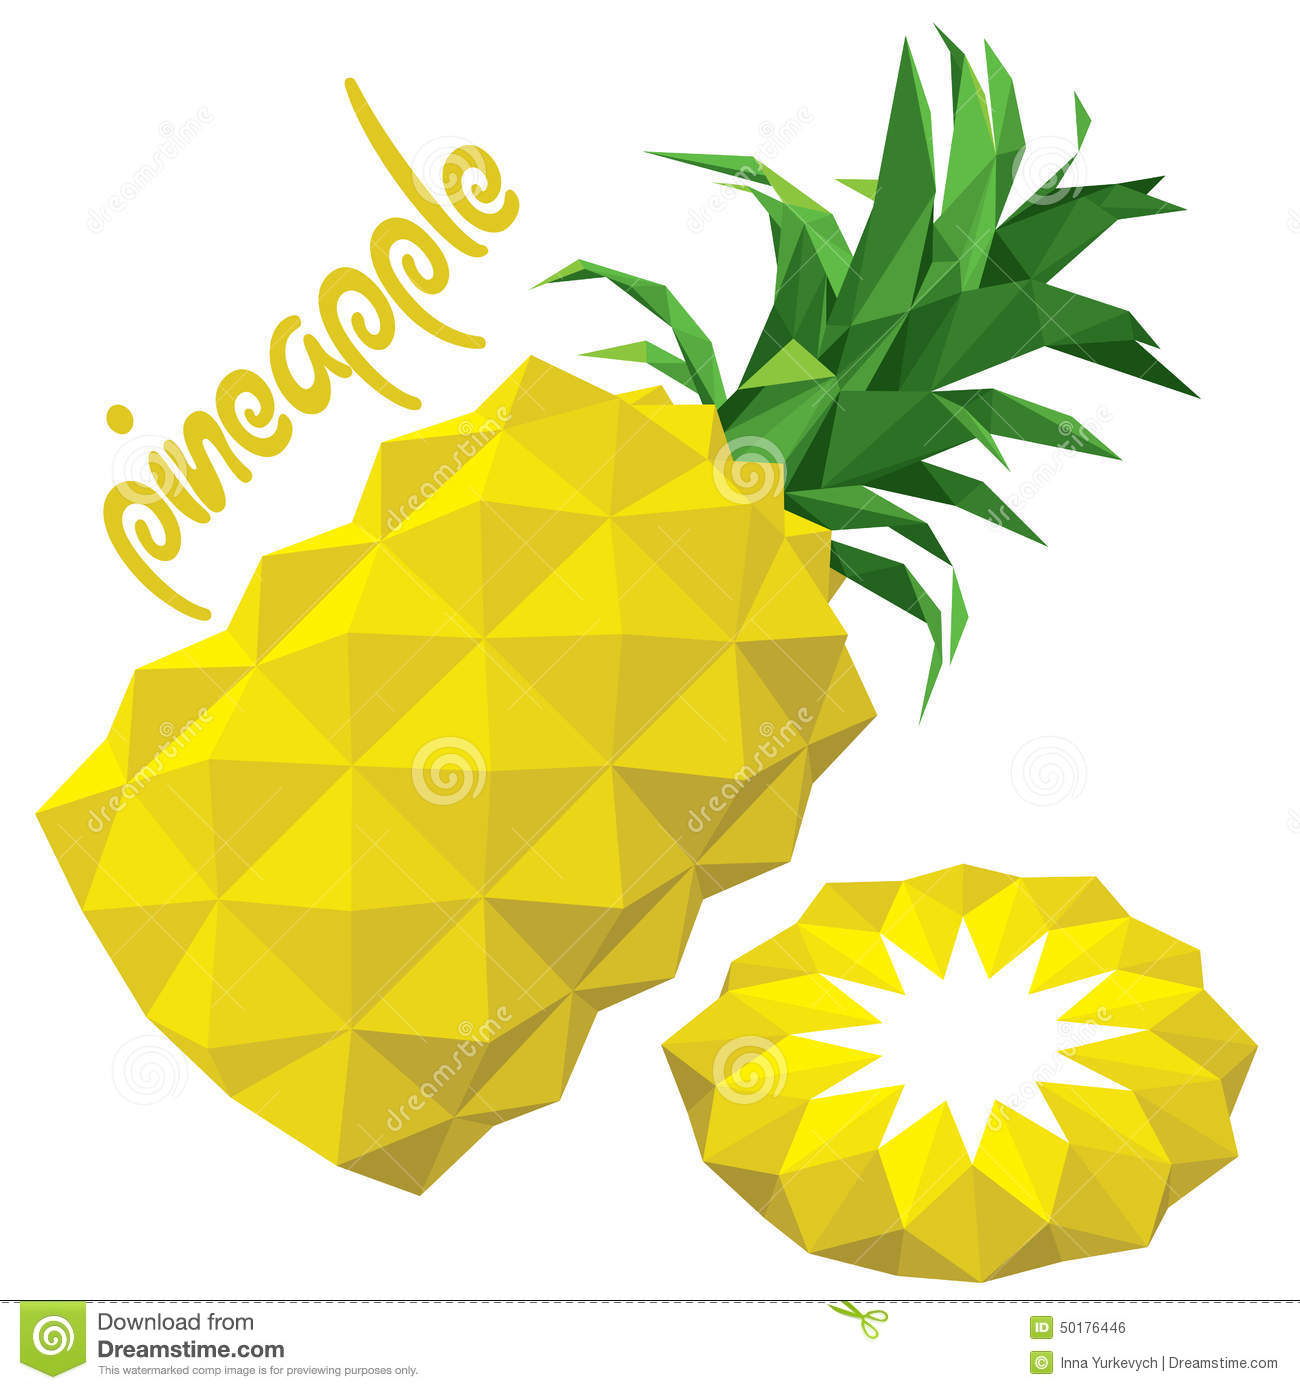 Origami Low Poly Pineapple Eps 10 Stock Vector Illustration